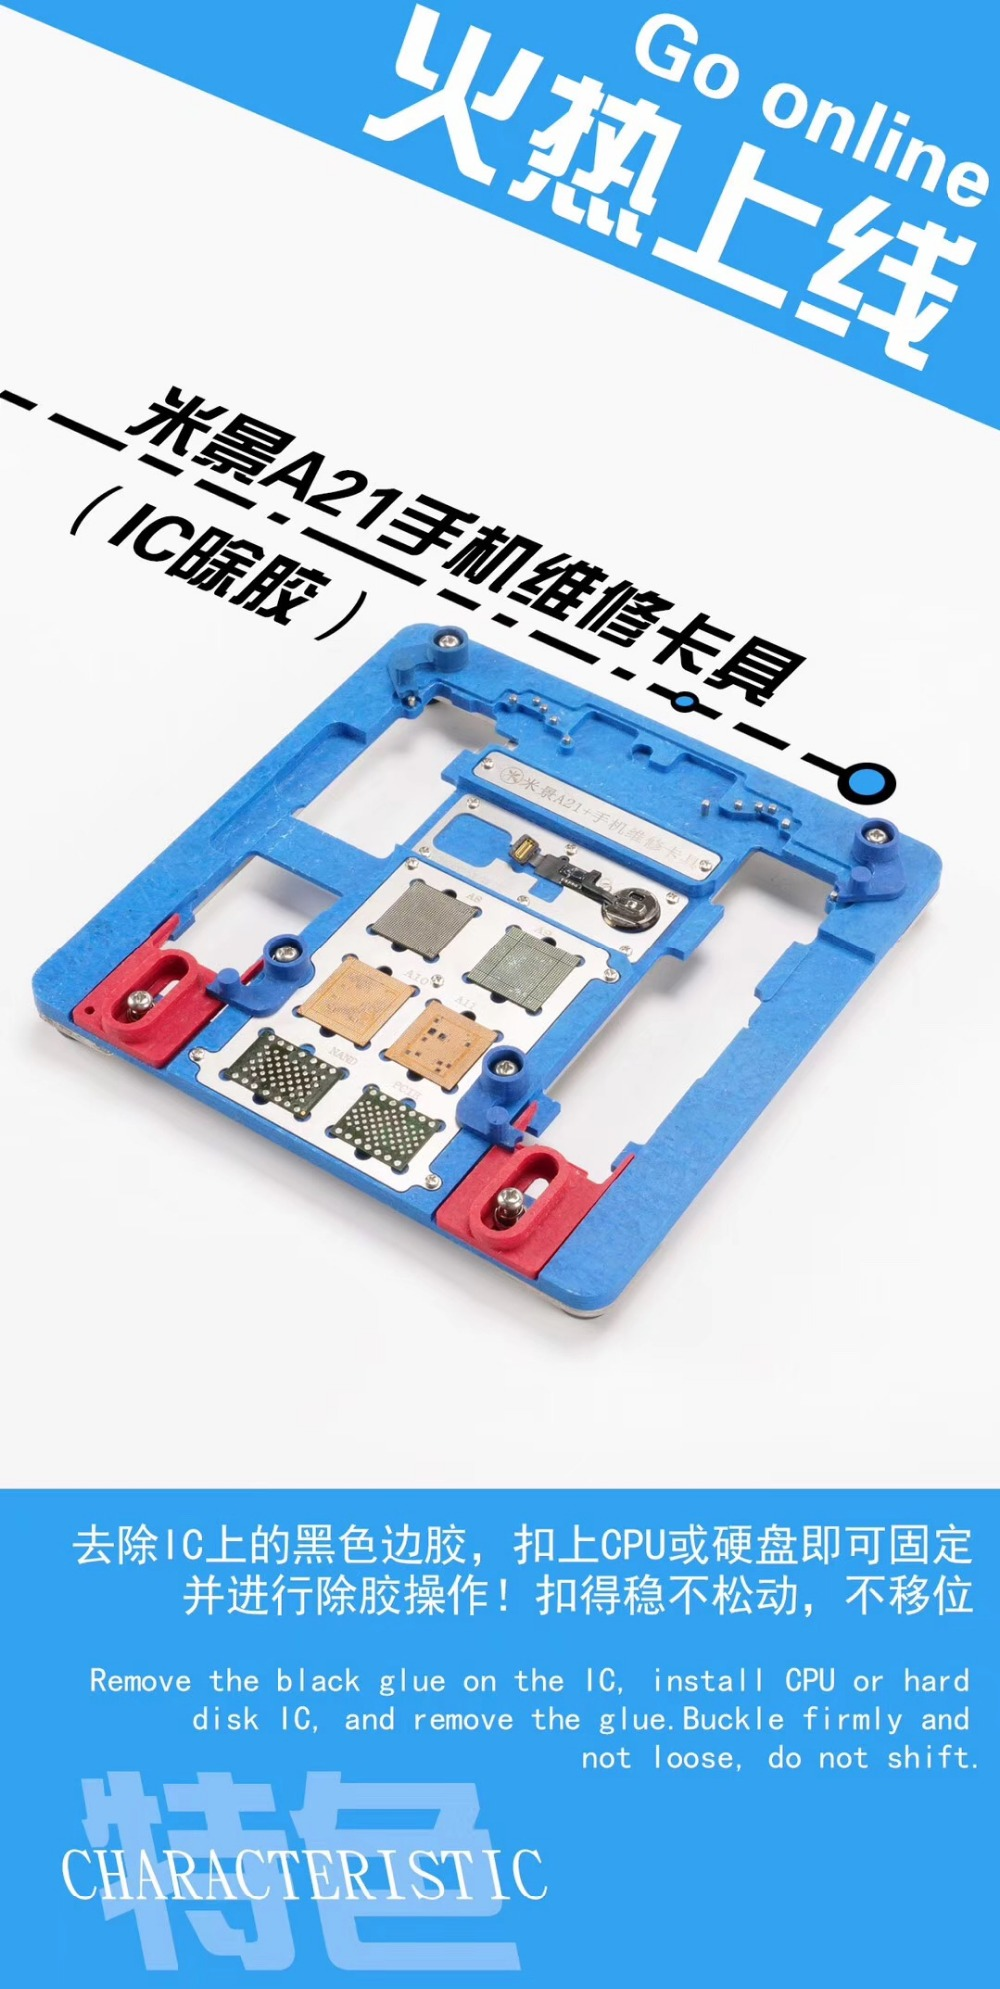 Mijing Act A21 Pcb Holder Fixture For Iphone 8p 8g 7p 7g 6sp 6s 6p Board Repair 6g Qianli